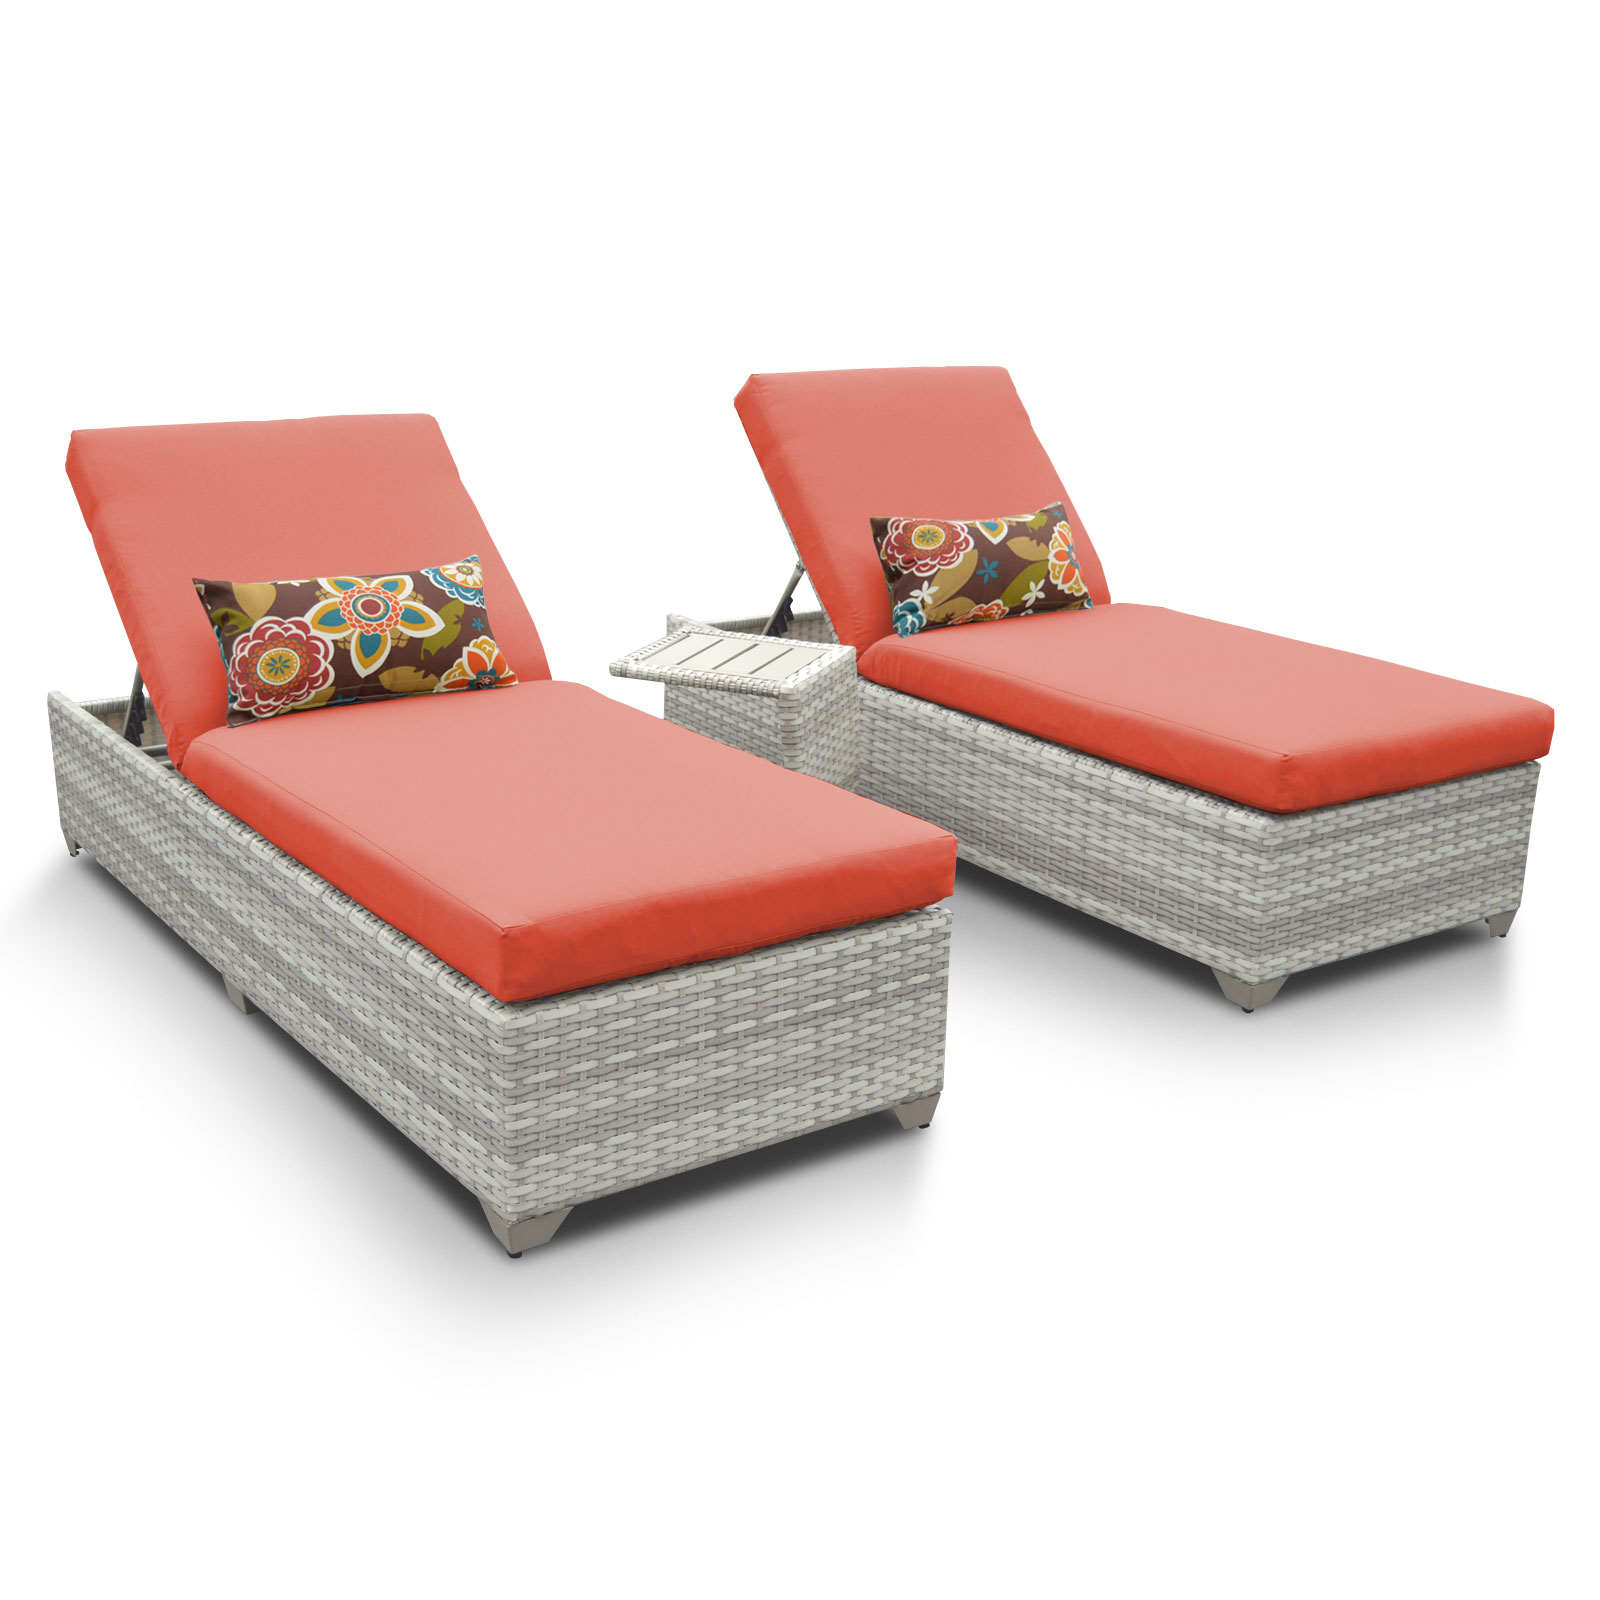 TK Classics Fairmont Chaise Set of 2 Outdoor Wicker Patio...